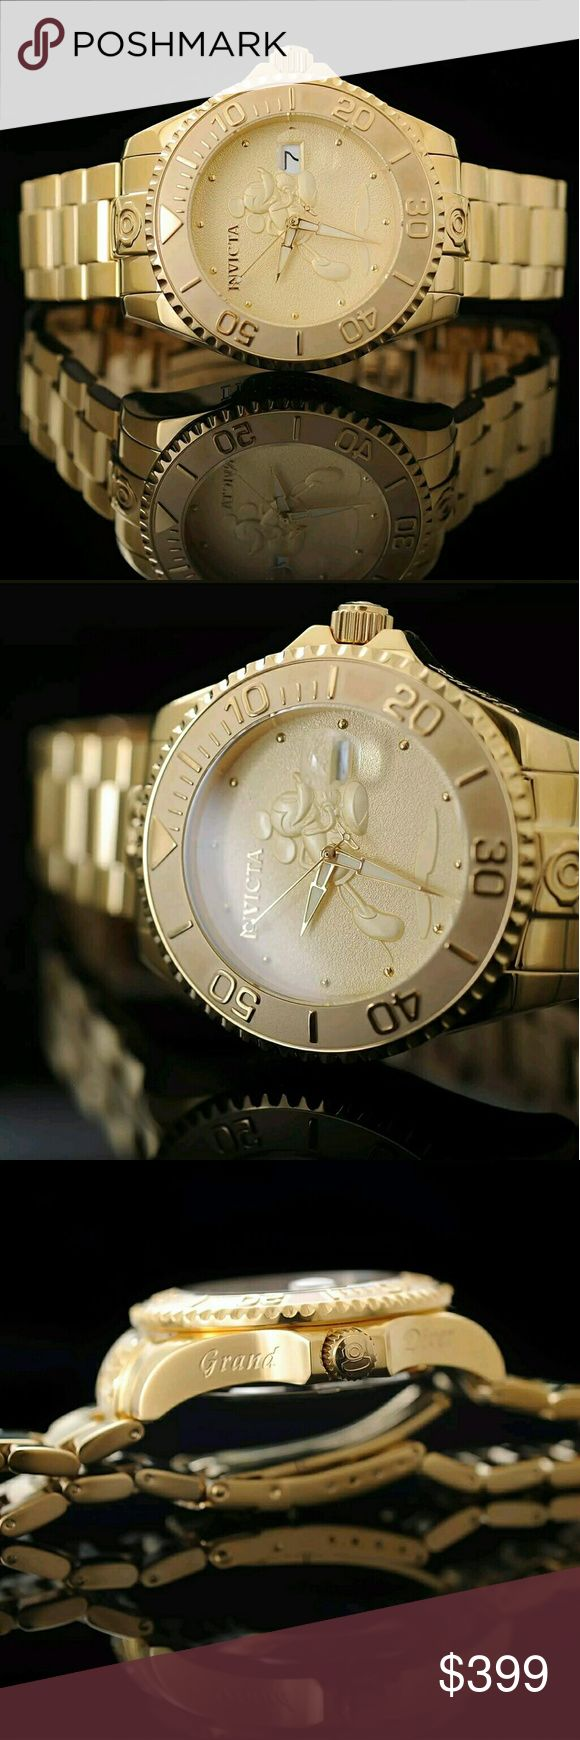 Big sale,$900 Invicta Automatic 18k watch Brand NWT Invicta Disney Mickey Mouse Grand 18k Automatic Mens Watch.   FIRM PRICE FIRM PRICE FIRM  $399.00 . AUTHENTIC WATCH  . AUTHENTIC BOX  . AUTHENTIC MANUAL    SHIPPING  PLEASE ALLOW FEW BUSINESS DAYS FOR ME TO SHIPPED IT OFF.I HAVE TO GET IT FROM MY STORE.   THANK YOU FOR YOUR UNDERSTANDING. Invicta Accessories Watches